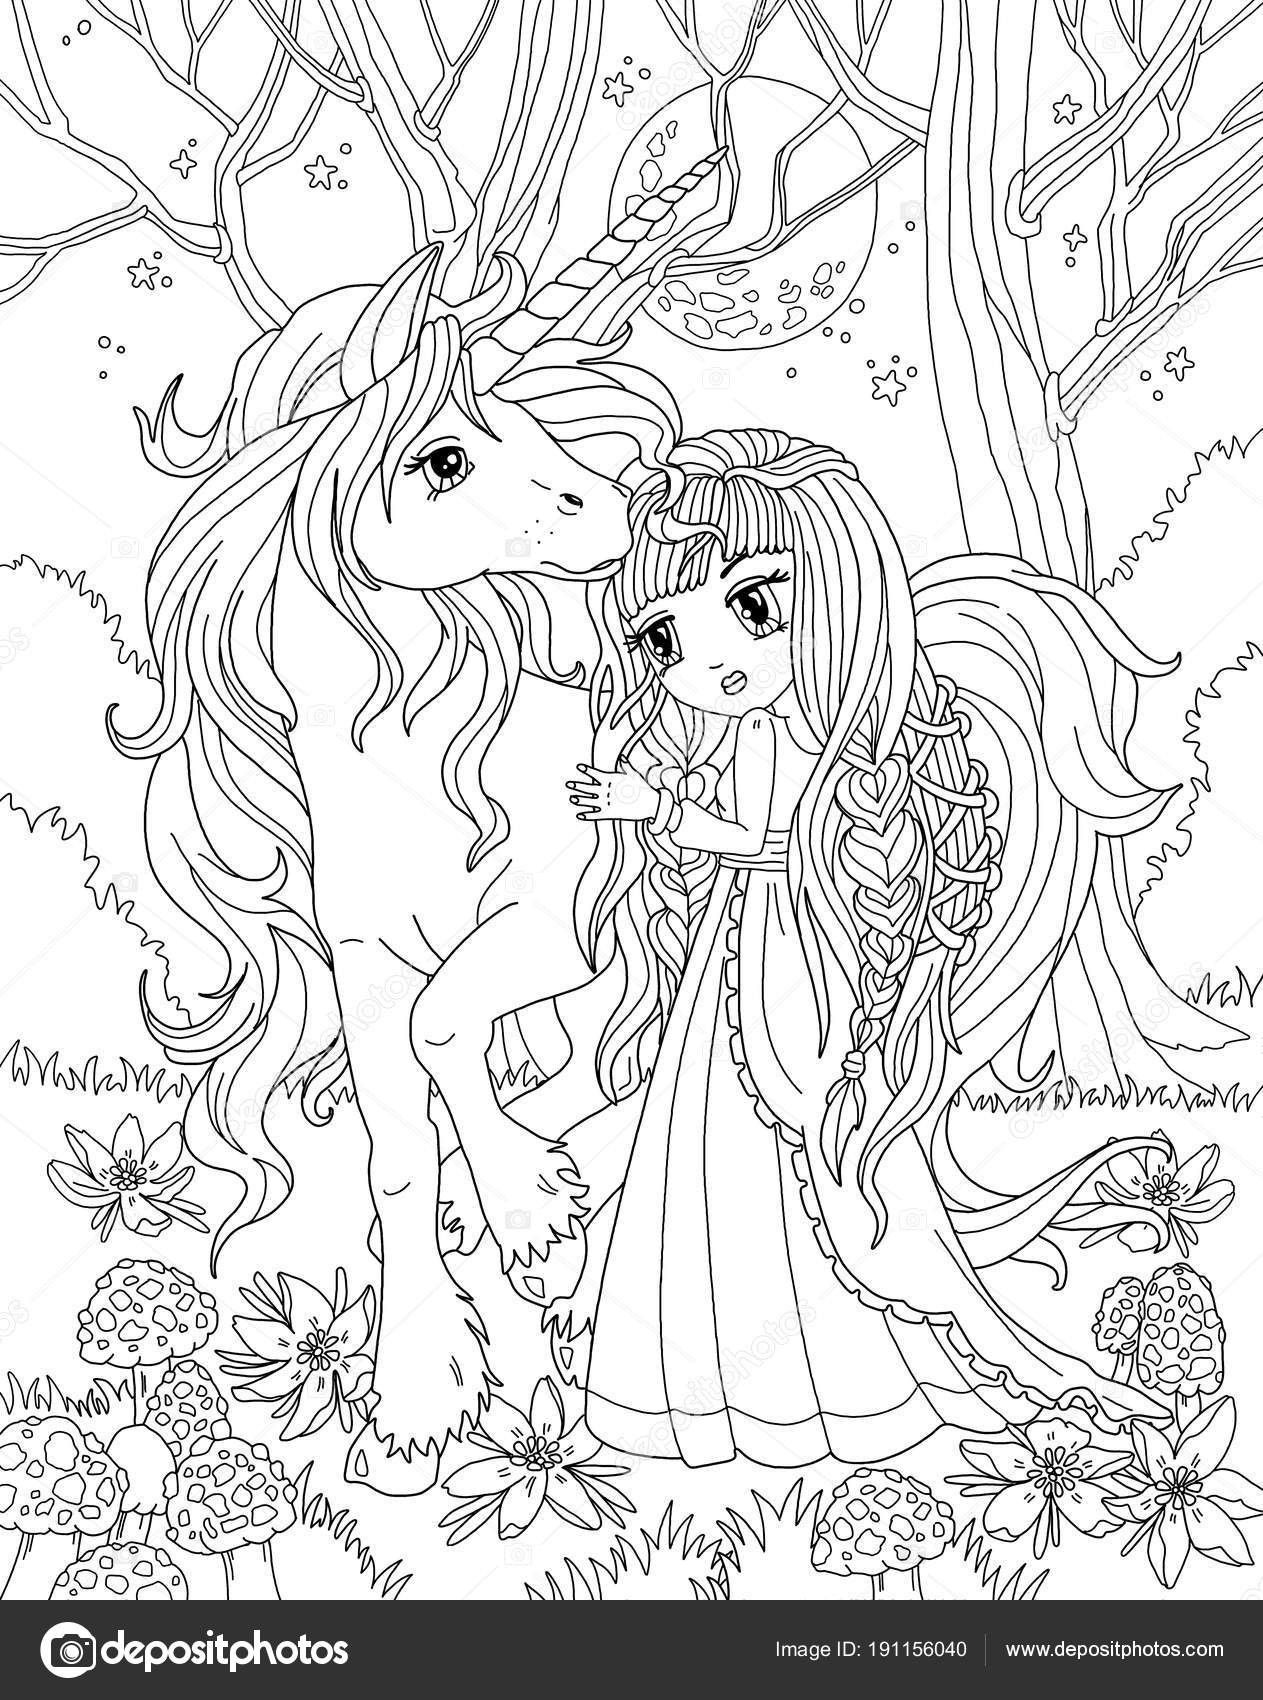 Unicorn Princess Coloring Page Youngandtae Com Princess Coloring Pages Princess Coloring Unicorn Coloring Pages